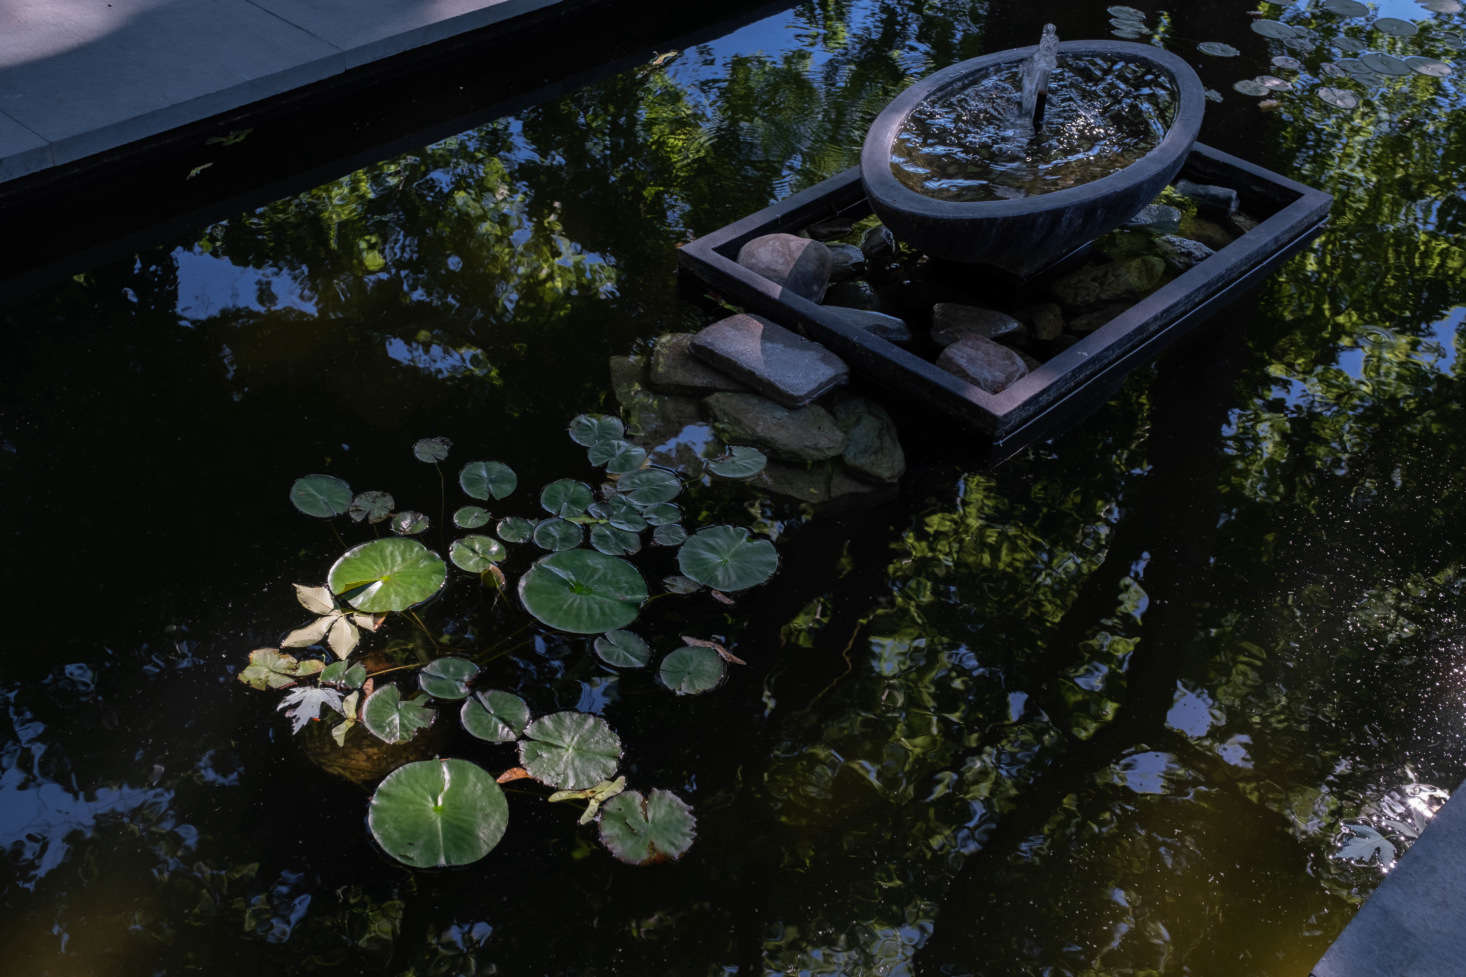 The shallow pool, with lily pads, is home to the couple's turtle, Moe. He winters in a glass tank in the houseuntil the water warms up enough for his reentry.